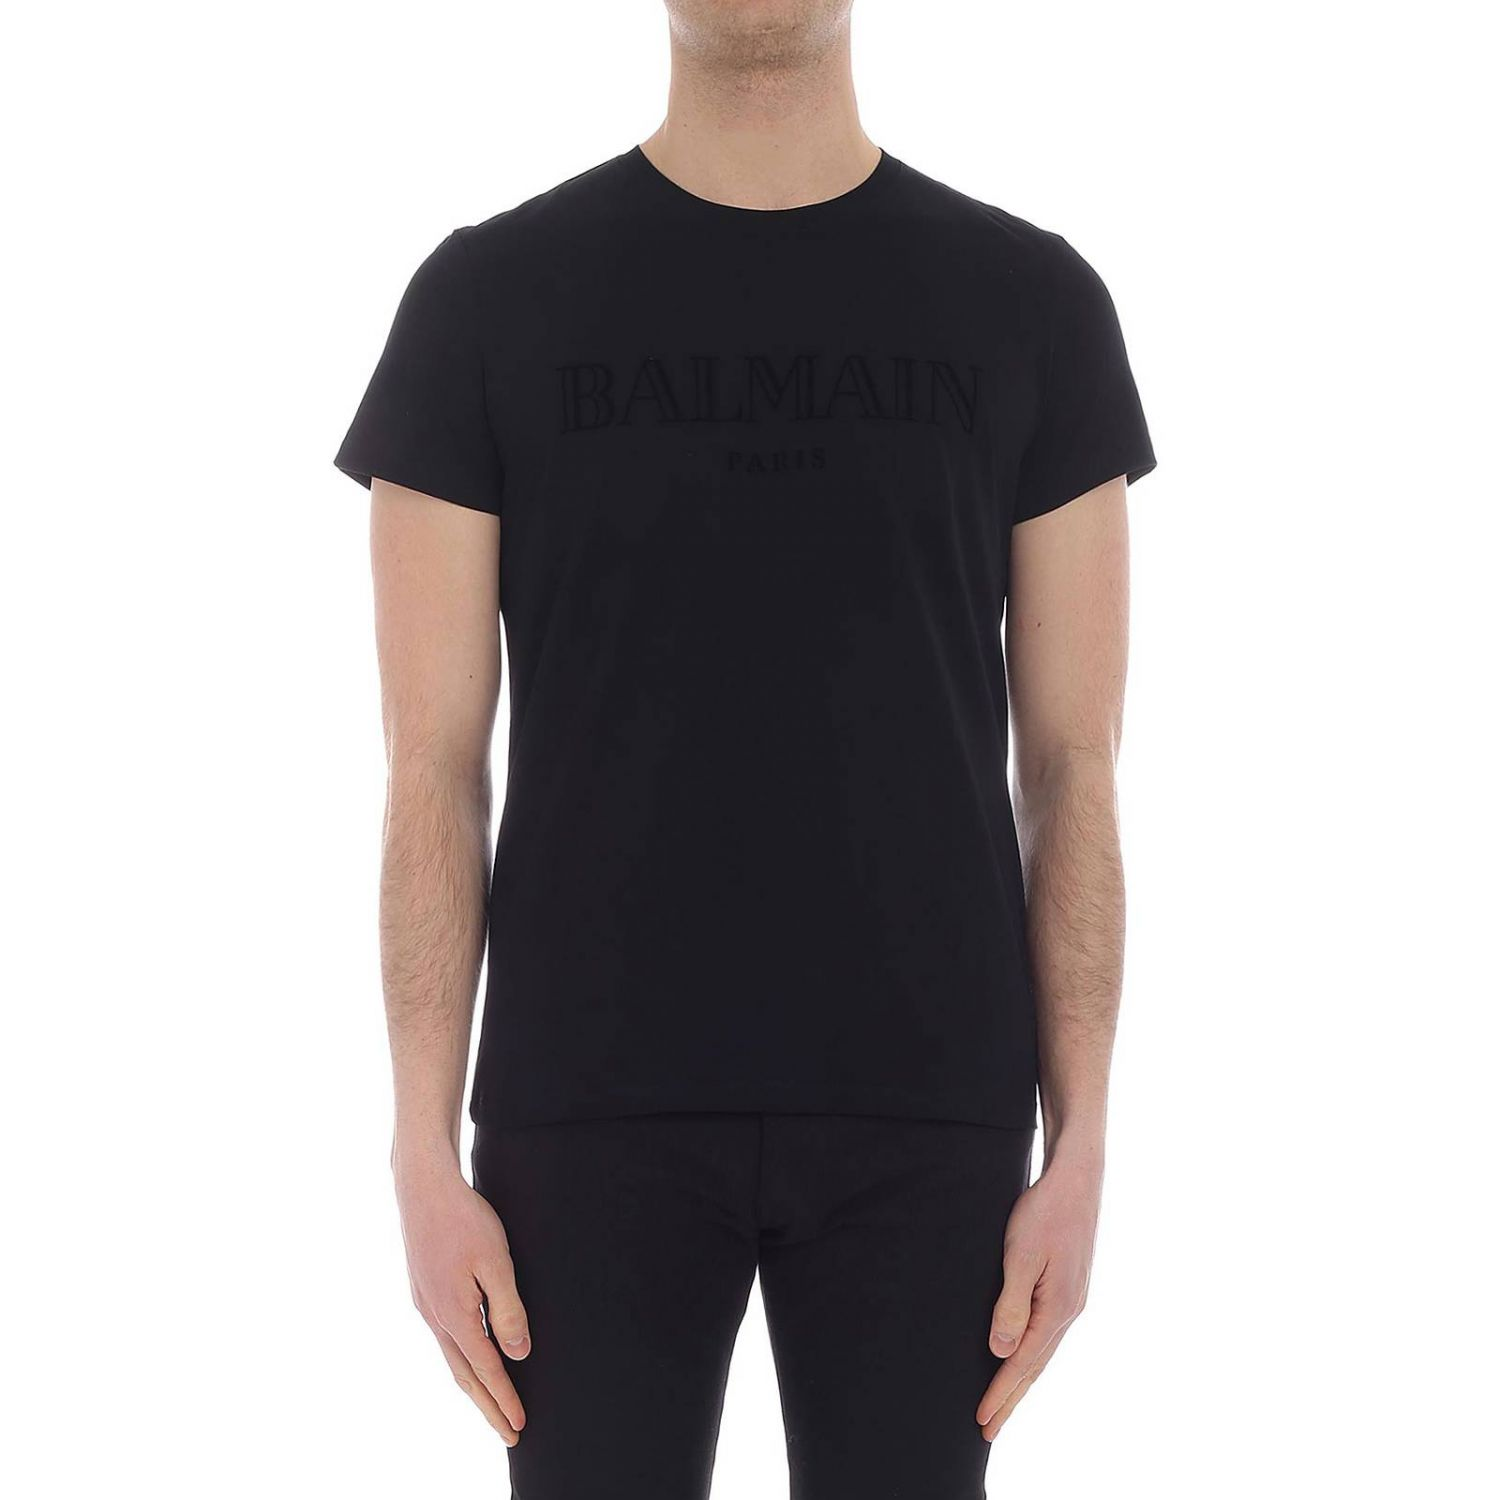 T-shirt men Balmain black 1